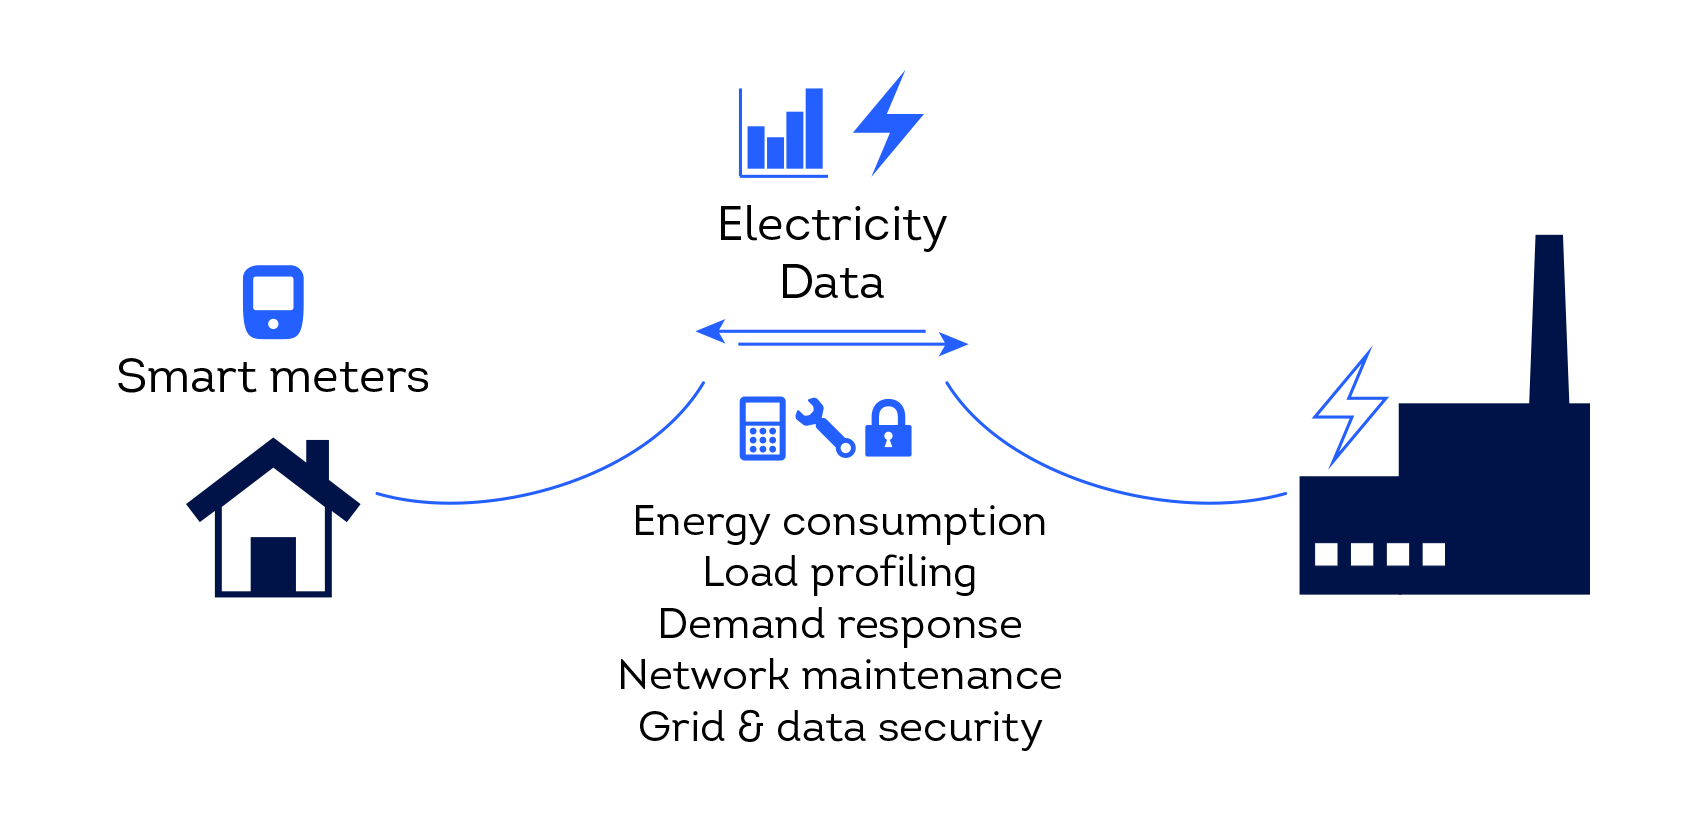 An illustration depicting the operating principle of a smart grid: two-way transfer of electricity and data within the grid, and business opportunities related to smart grids: tracking energy consumption, load profiling, responding to electricity demand, monitoring of network maintenance needs, and data security within the grid.